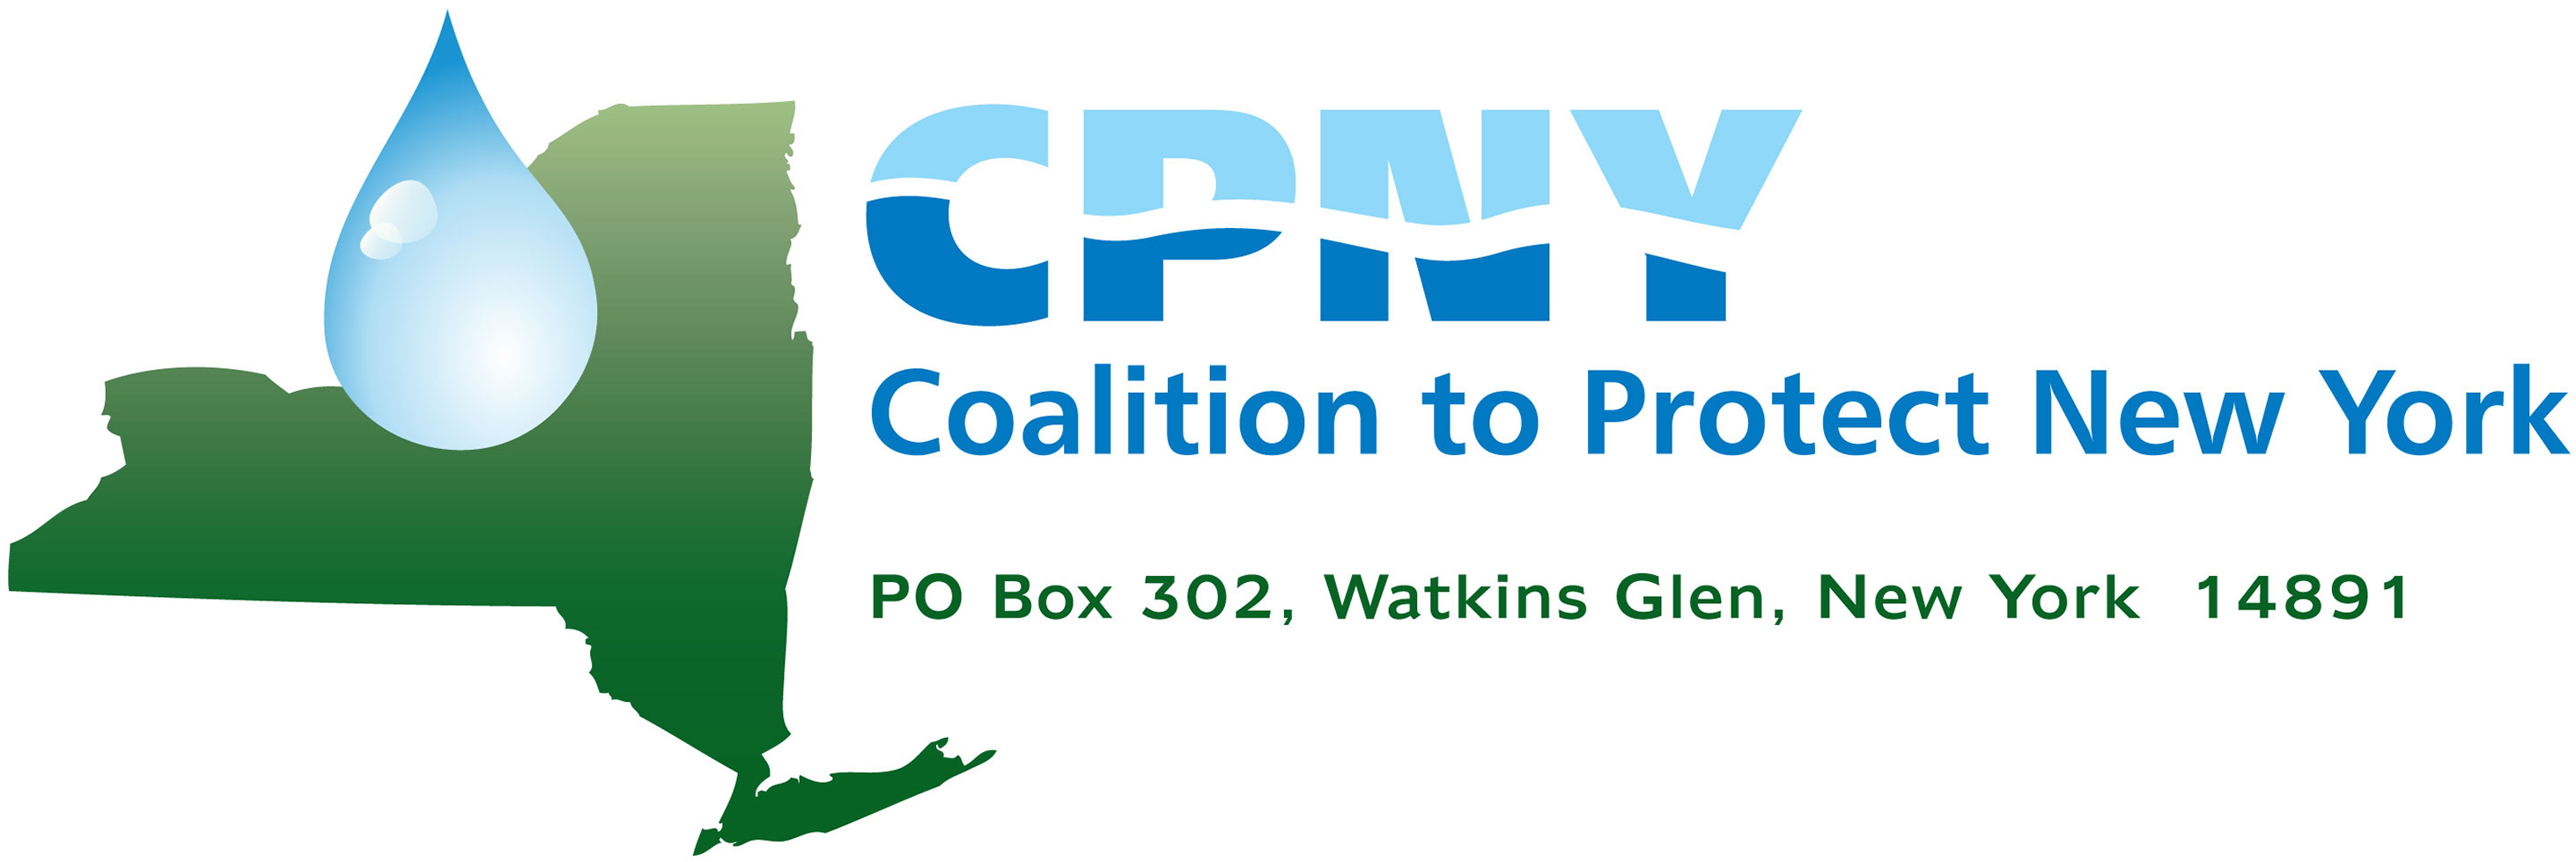 Coalition to Protect New York